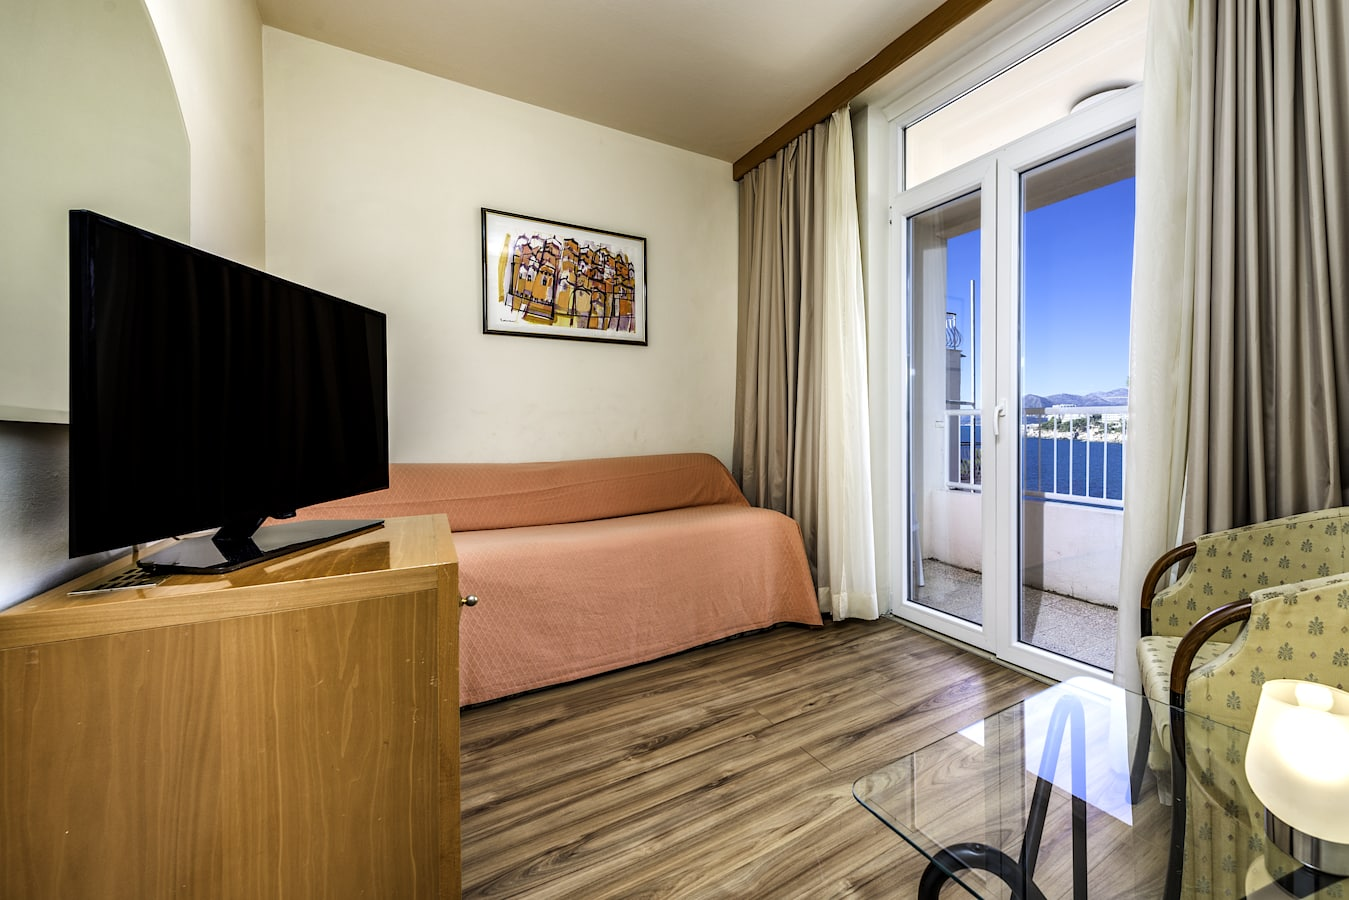 splendid-hotel-dubrovnik-superior-room-seaview-balcony.jpg